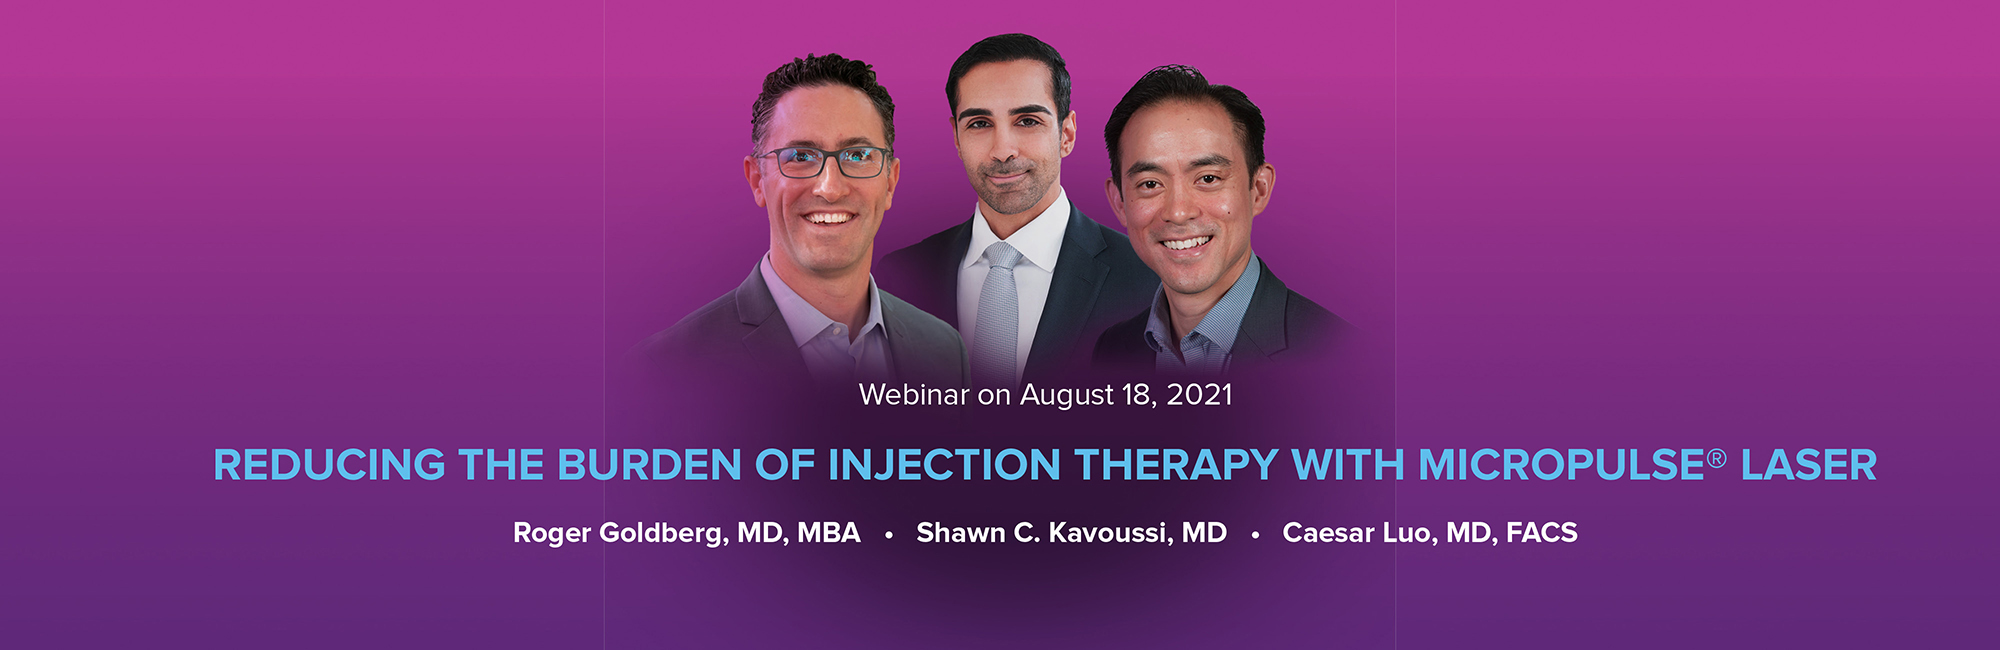 Webinar: Reducing the Burden of Injection Therapy with MicroPulse Laser